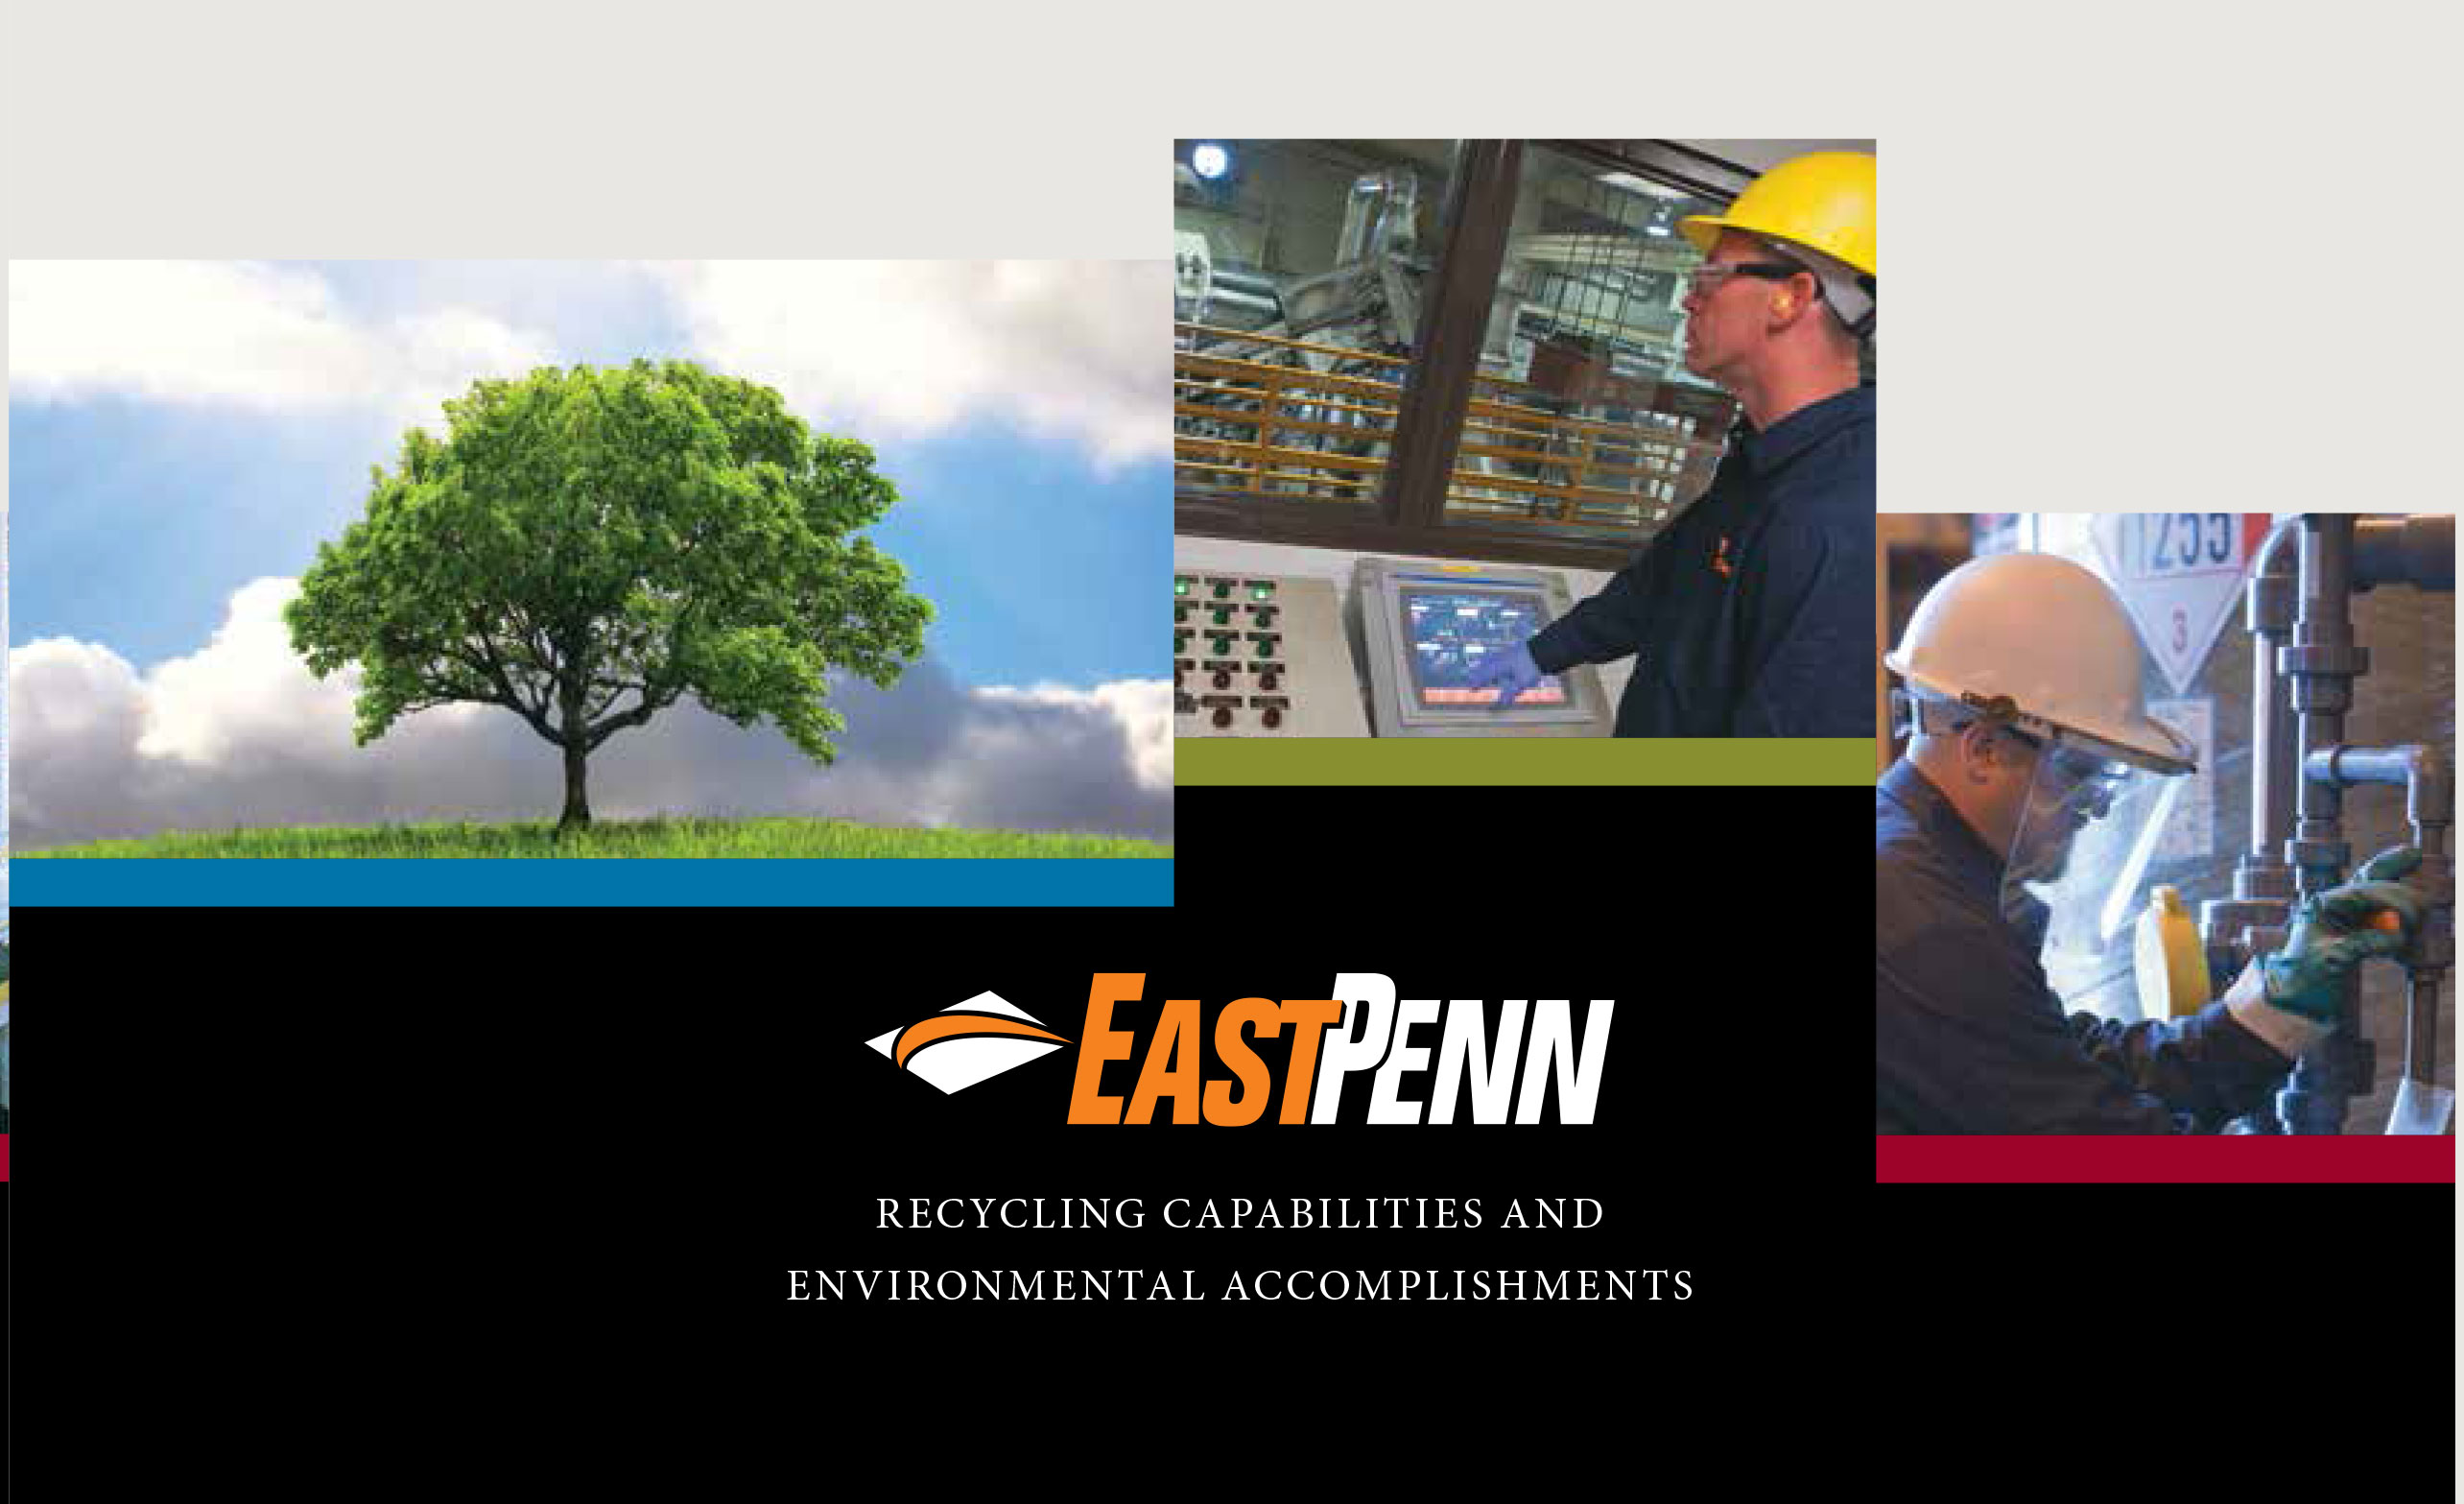 New Recycling Capabilities And Environmental